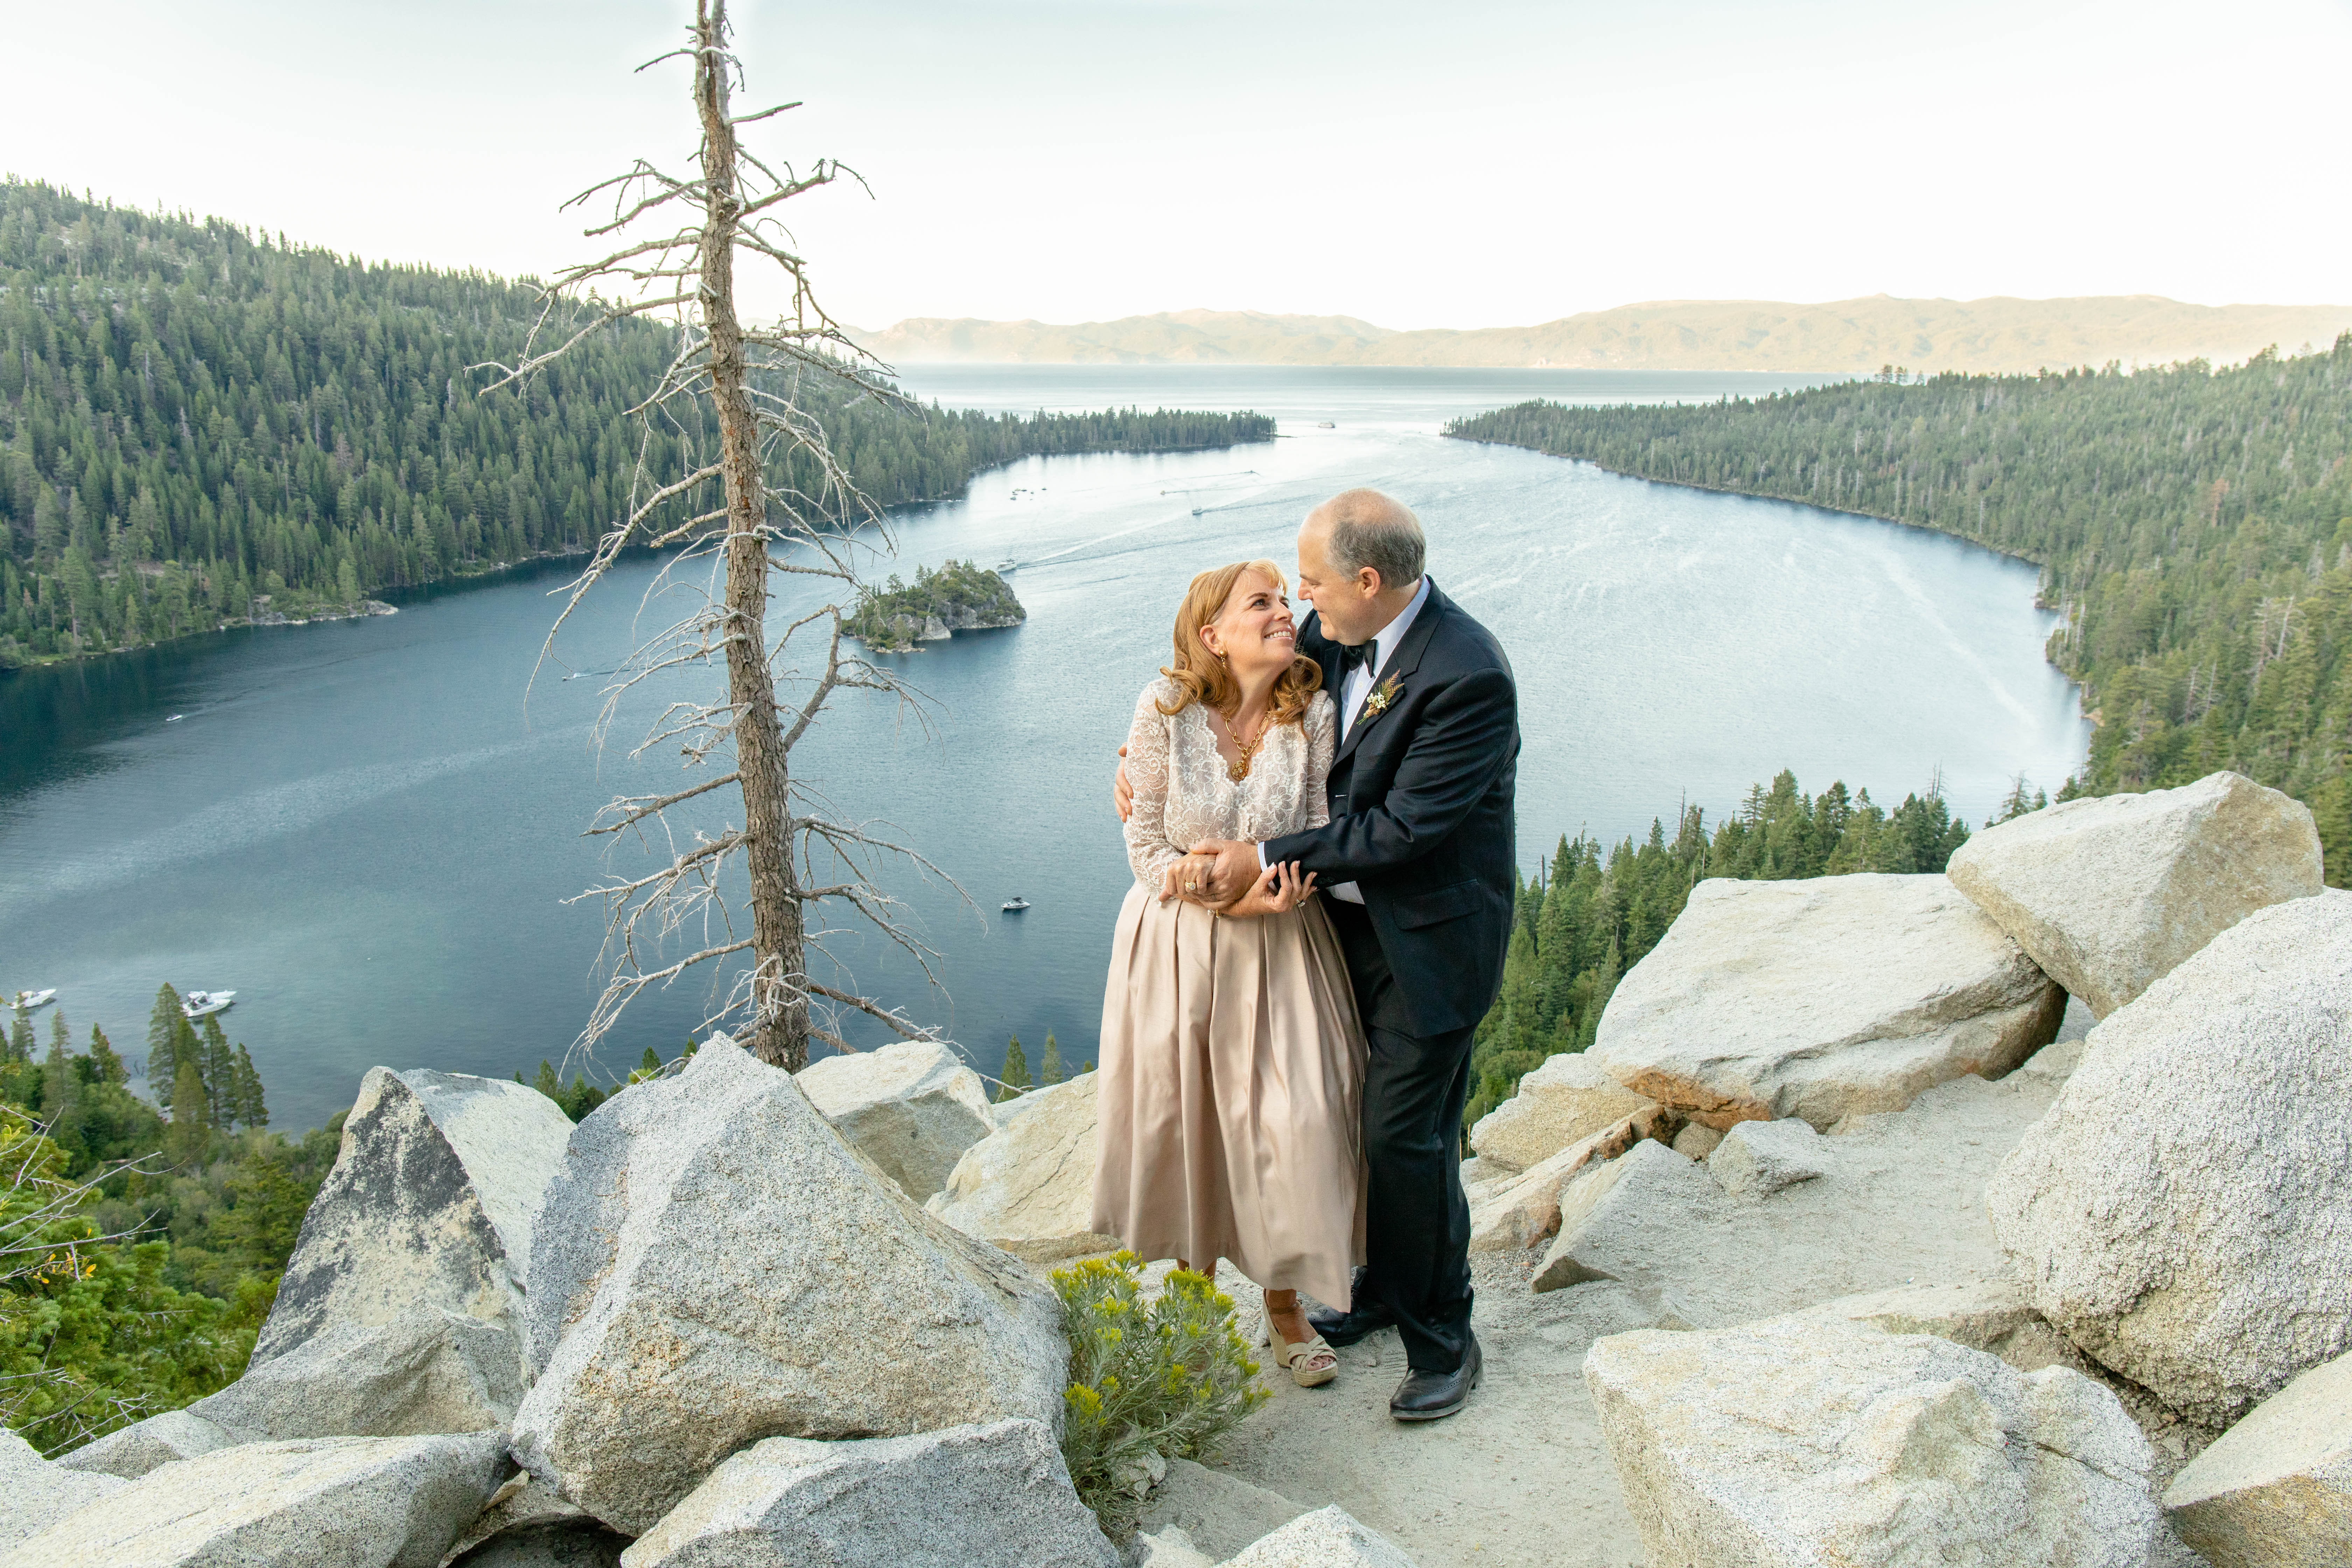 Mindy Stratton Photography   Wedding photographer in Delta, Colorado featured on WED West Slope - a directory for wedding vendors.